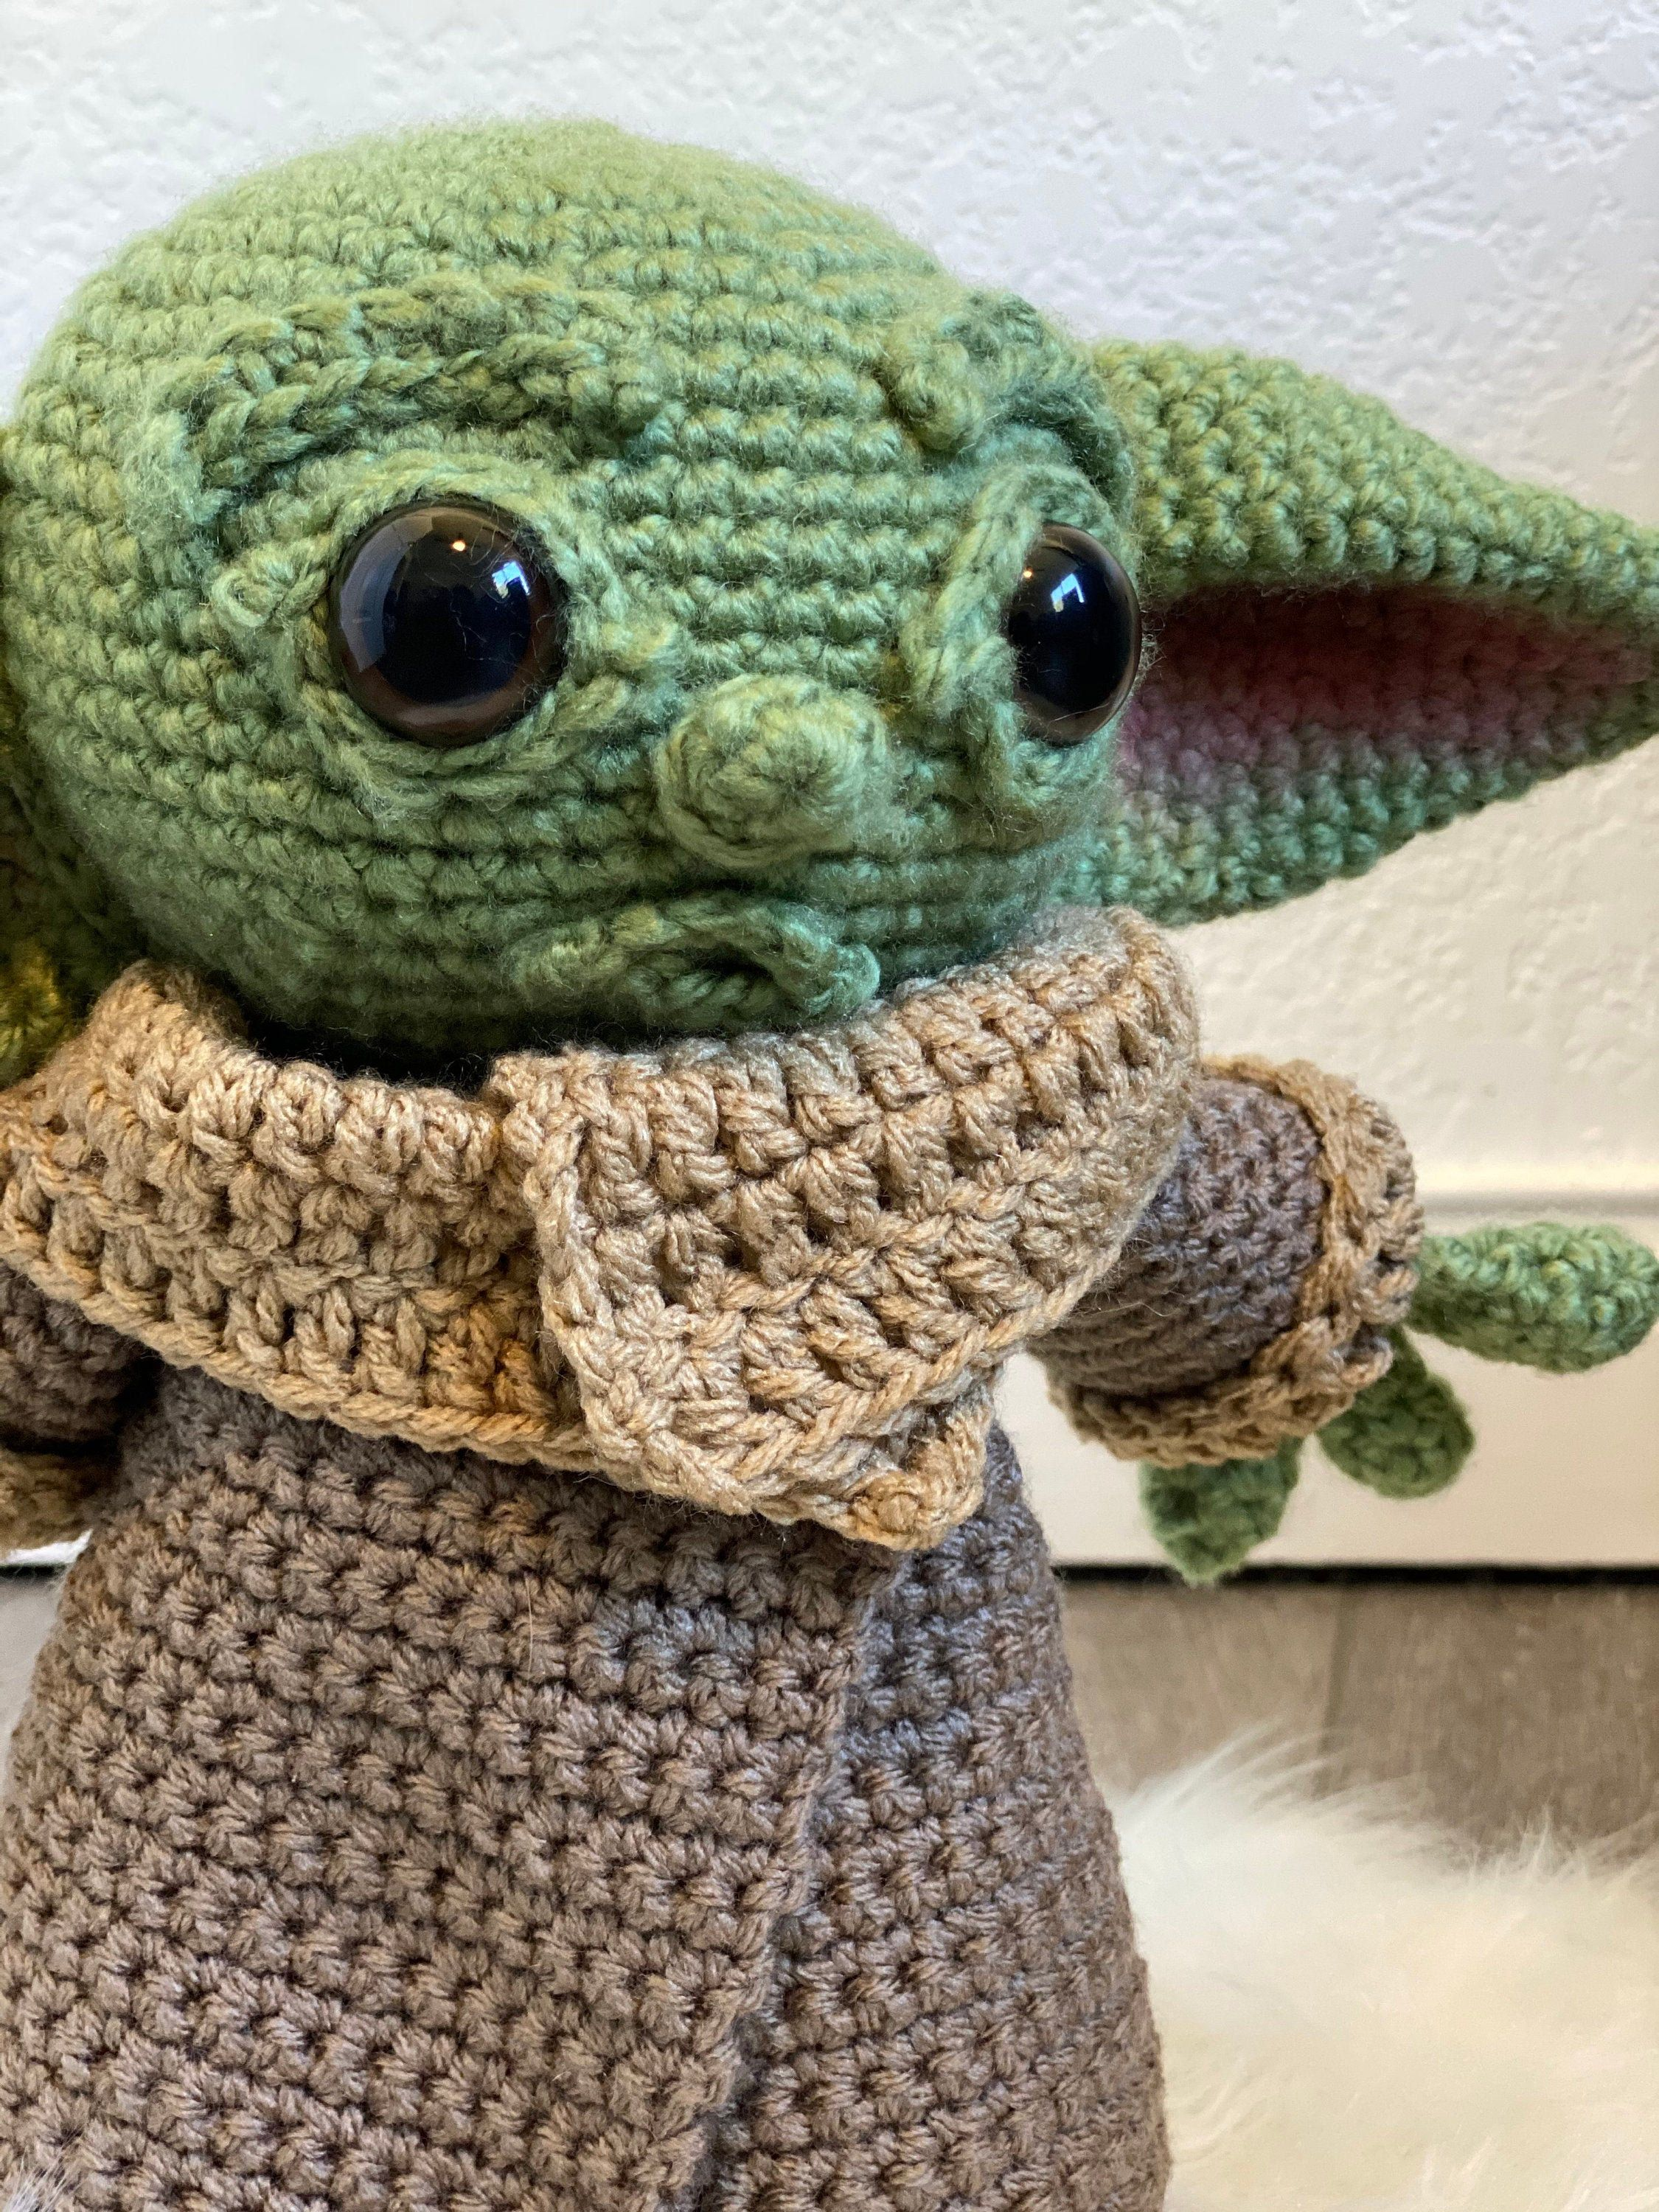 Limited edition handmade baby green alien plush toy